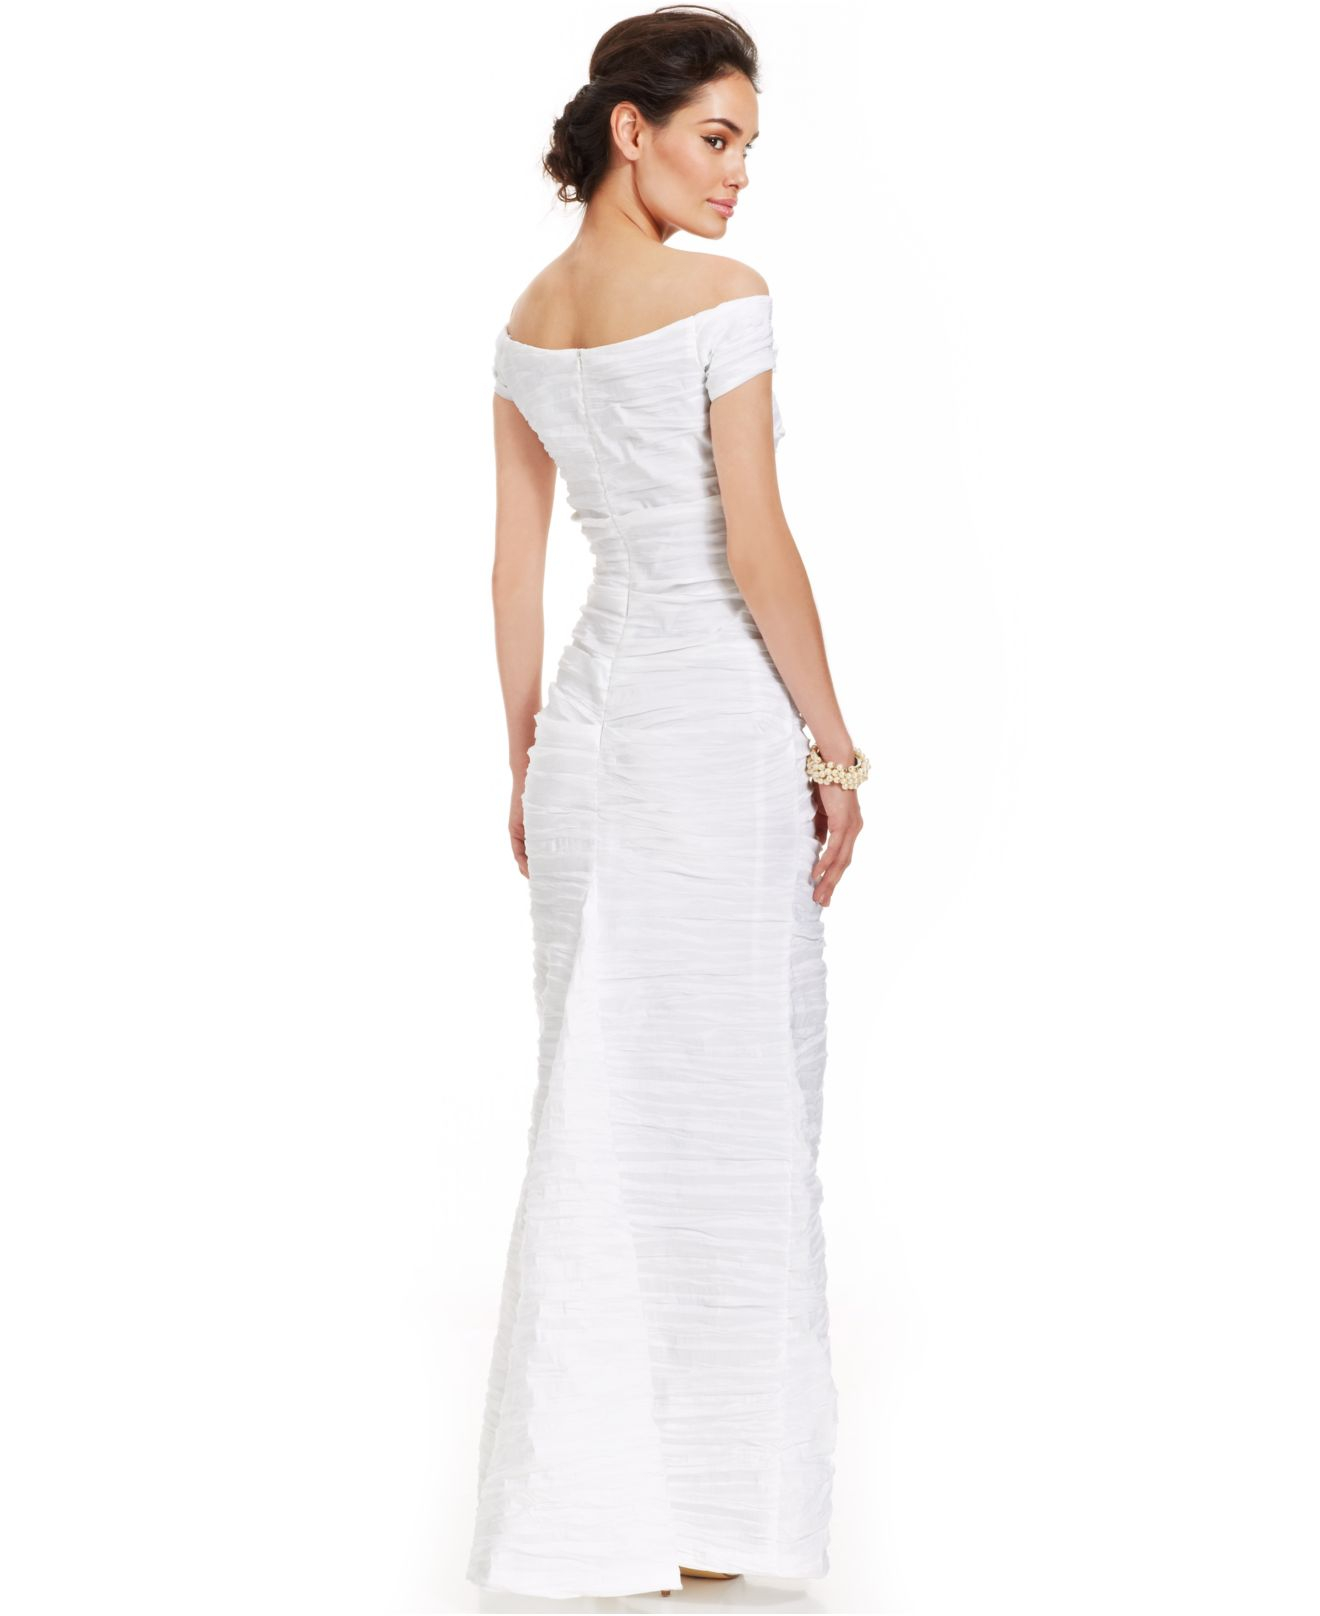 Lyst - Alex Evenings Off-the-shoulder Taffeta Evening Gown in White